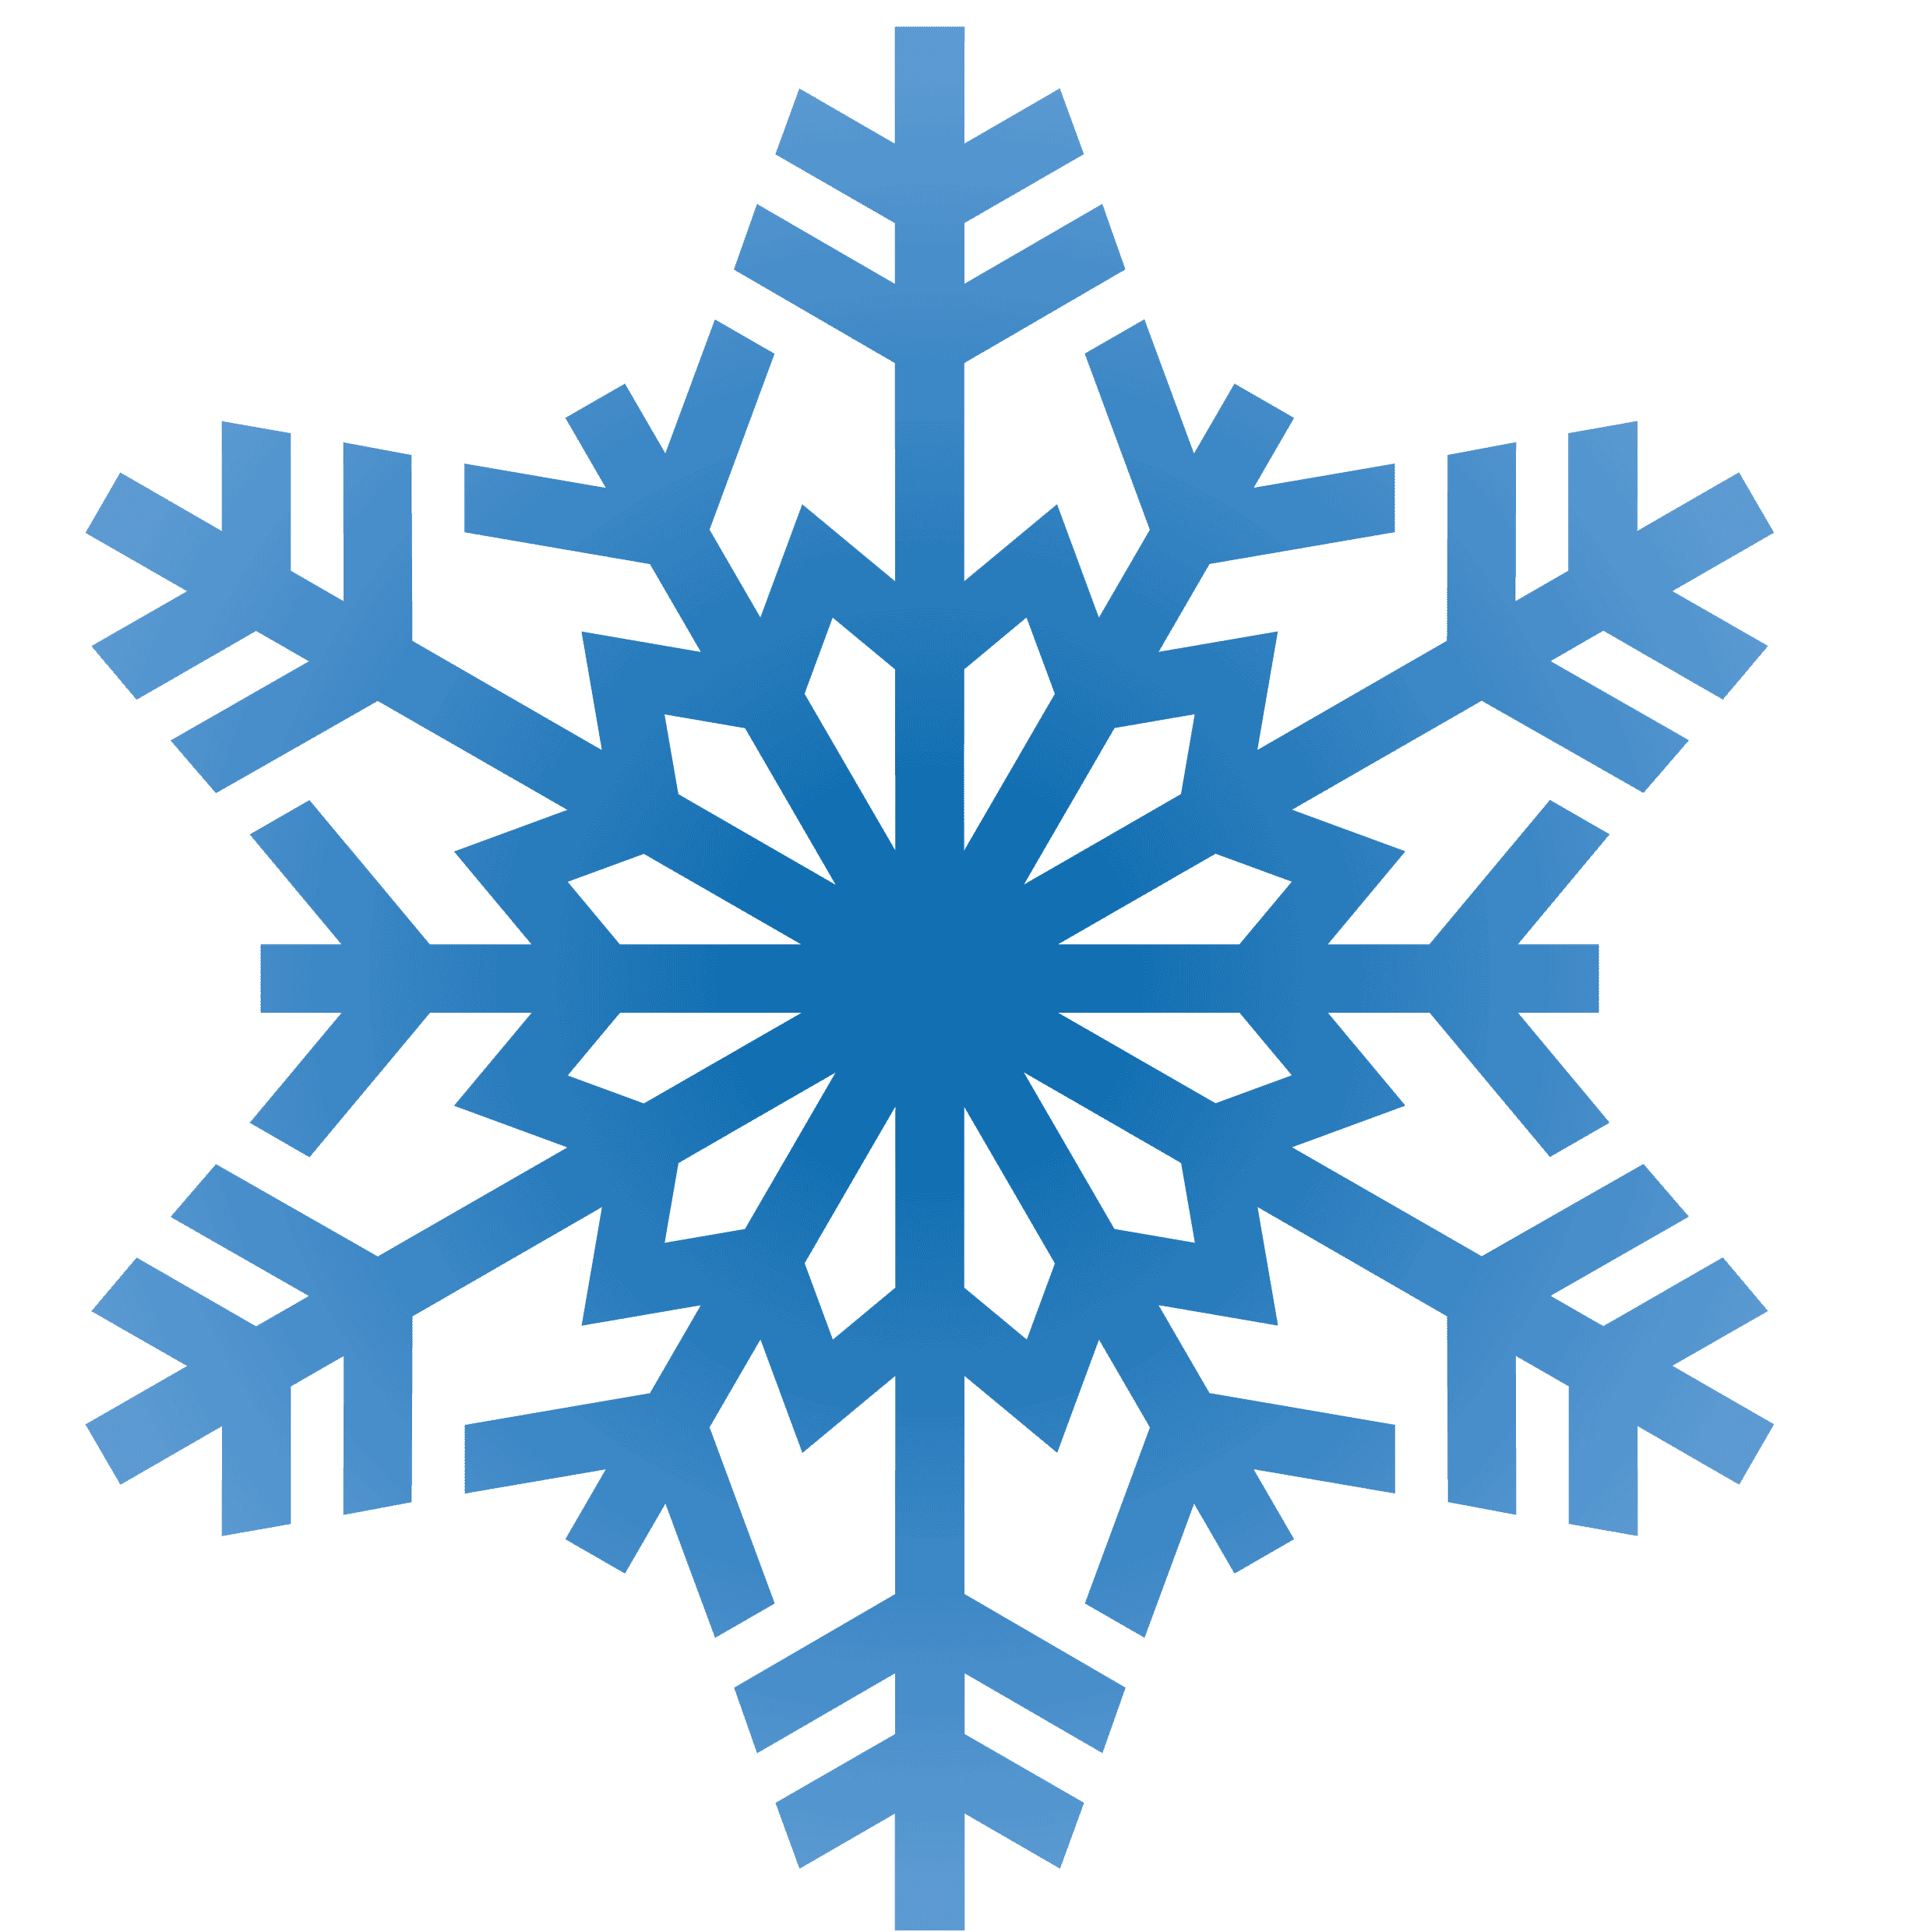 Snowflake Background 8906 Hd Wallpapers In Others Imagesci Com Snowflake Clipart Snowflake Stencil Stencil Crafts